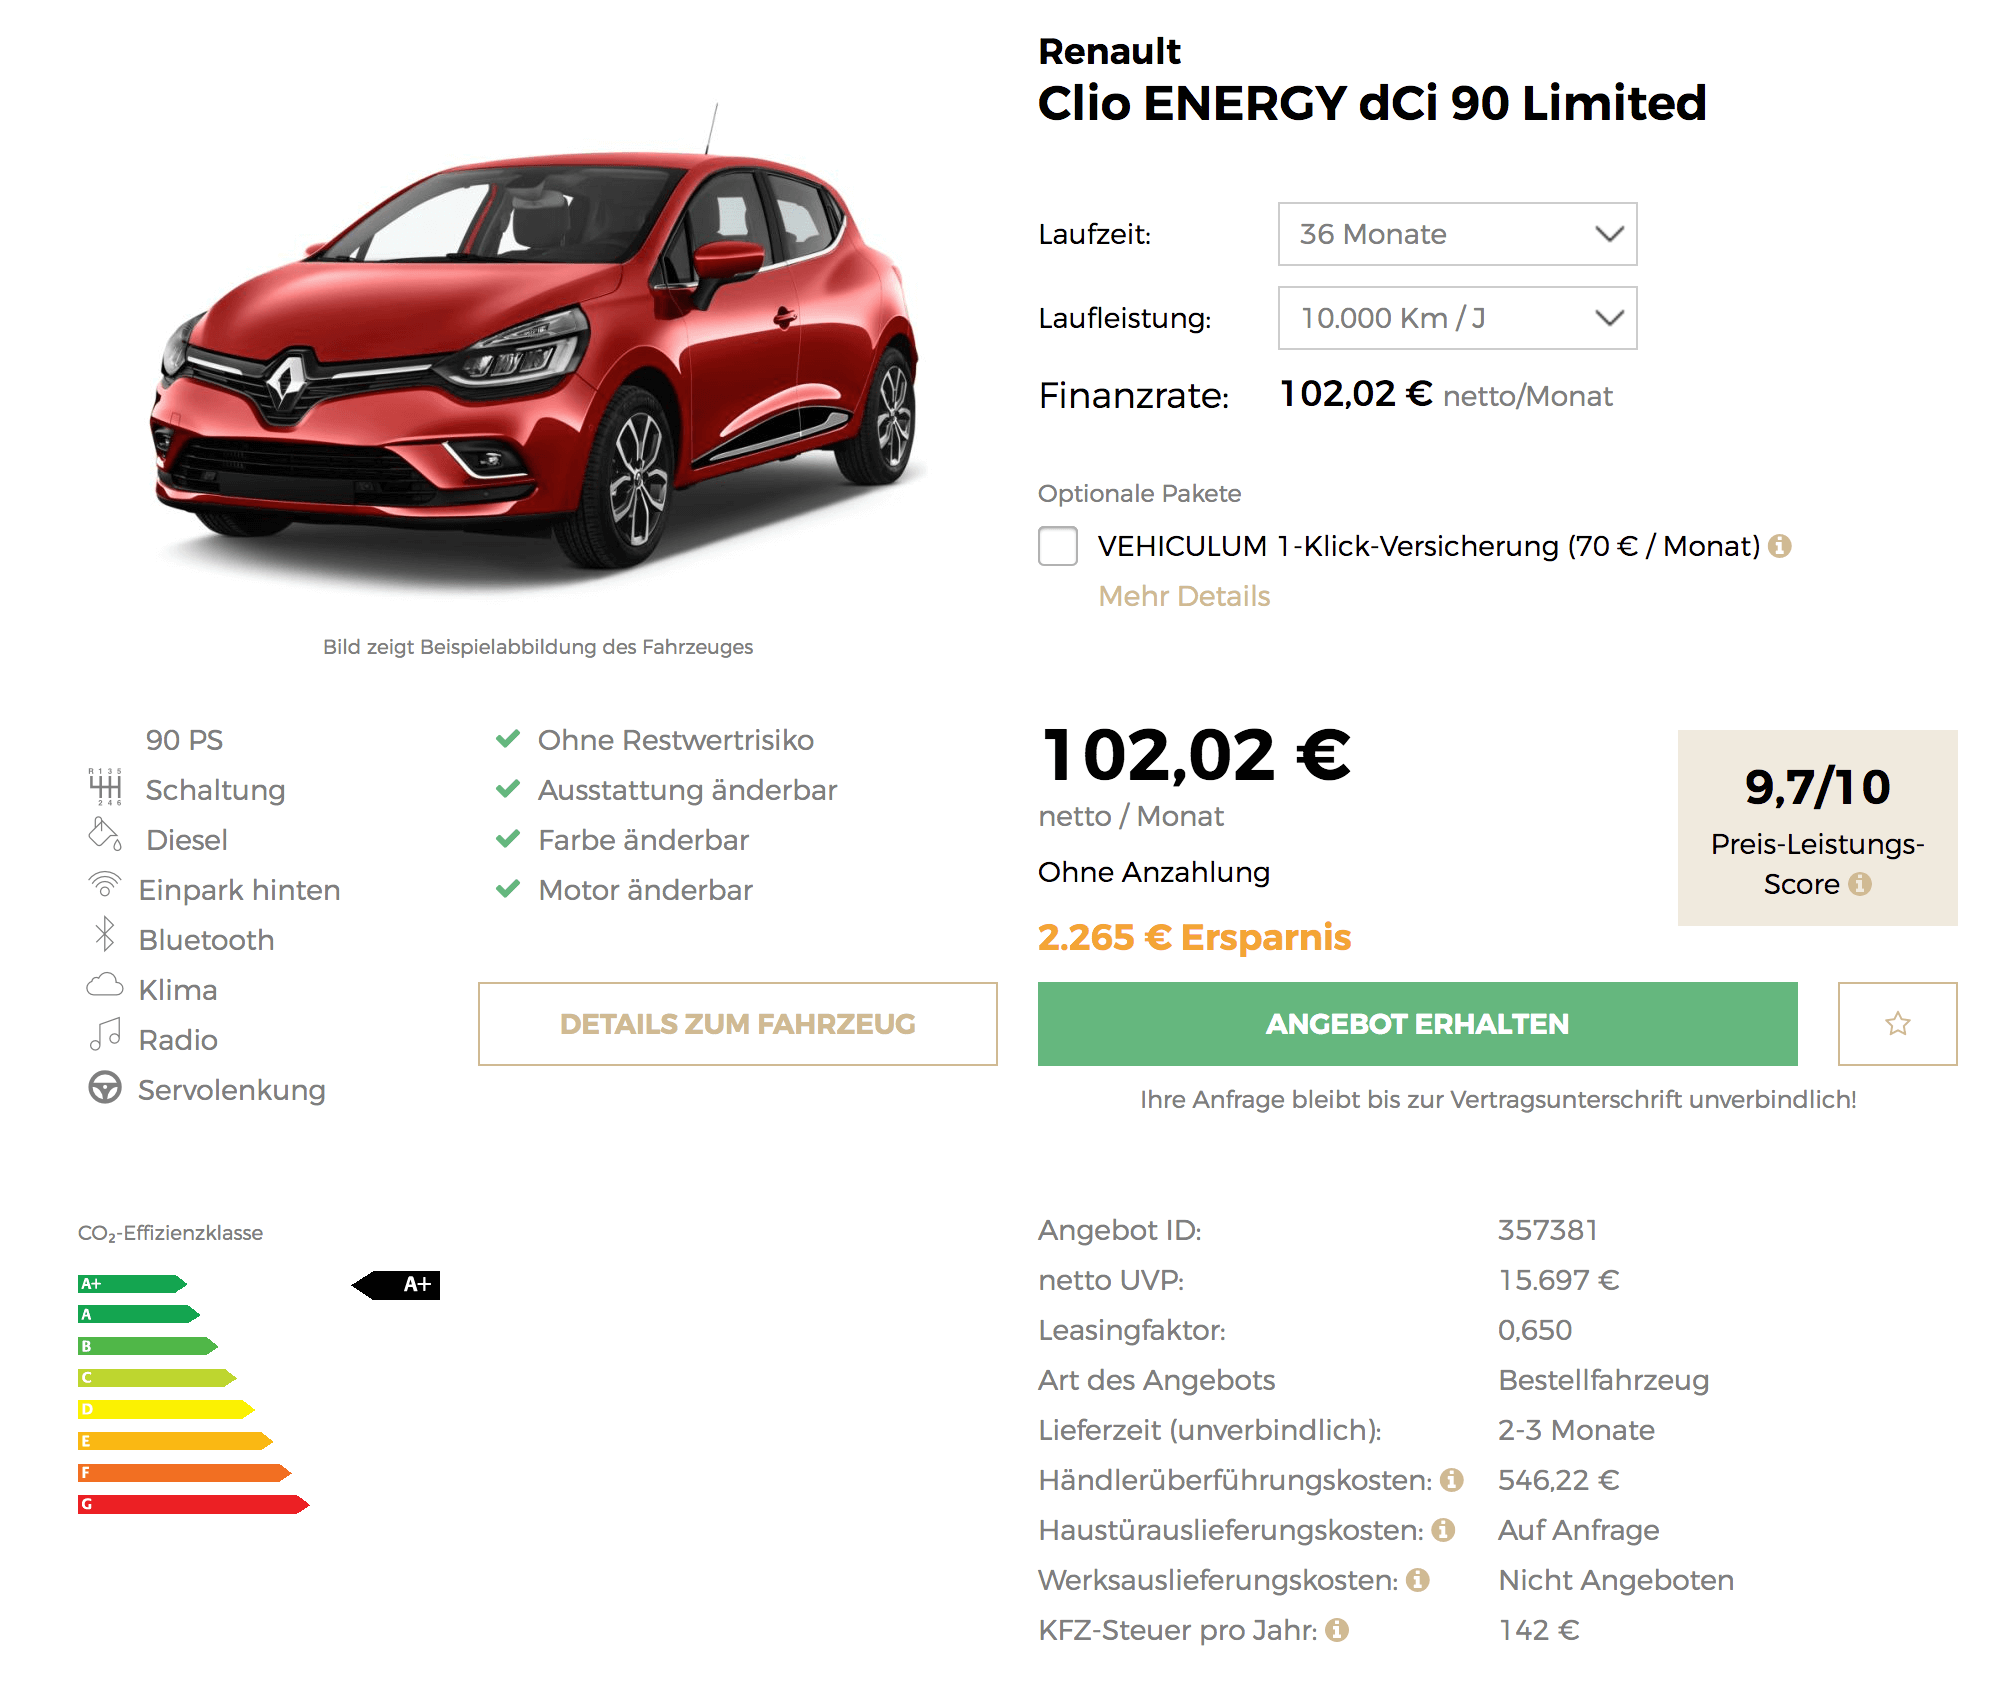 renault clio energy leasing f r 102 euro im monat netto. Black Bedroom Furniture Sets. Home Design Ideas